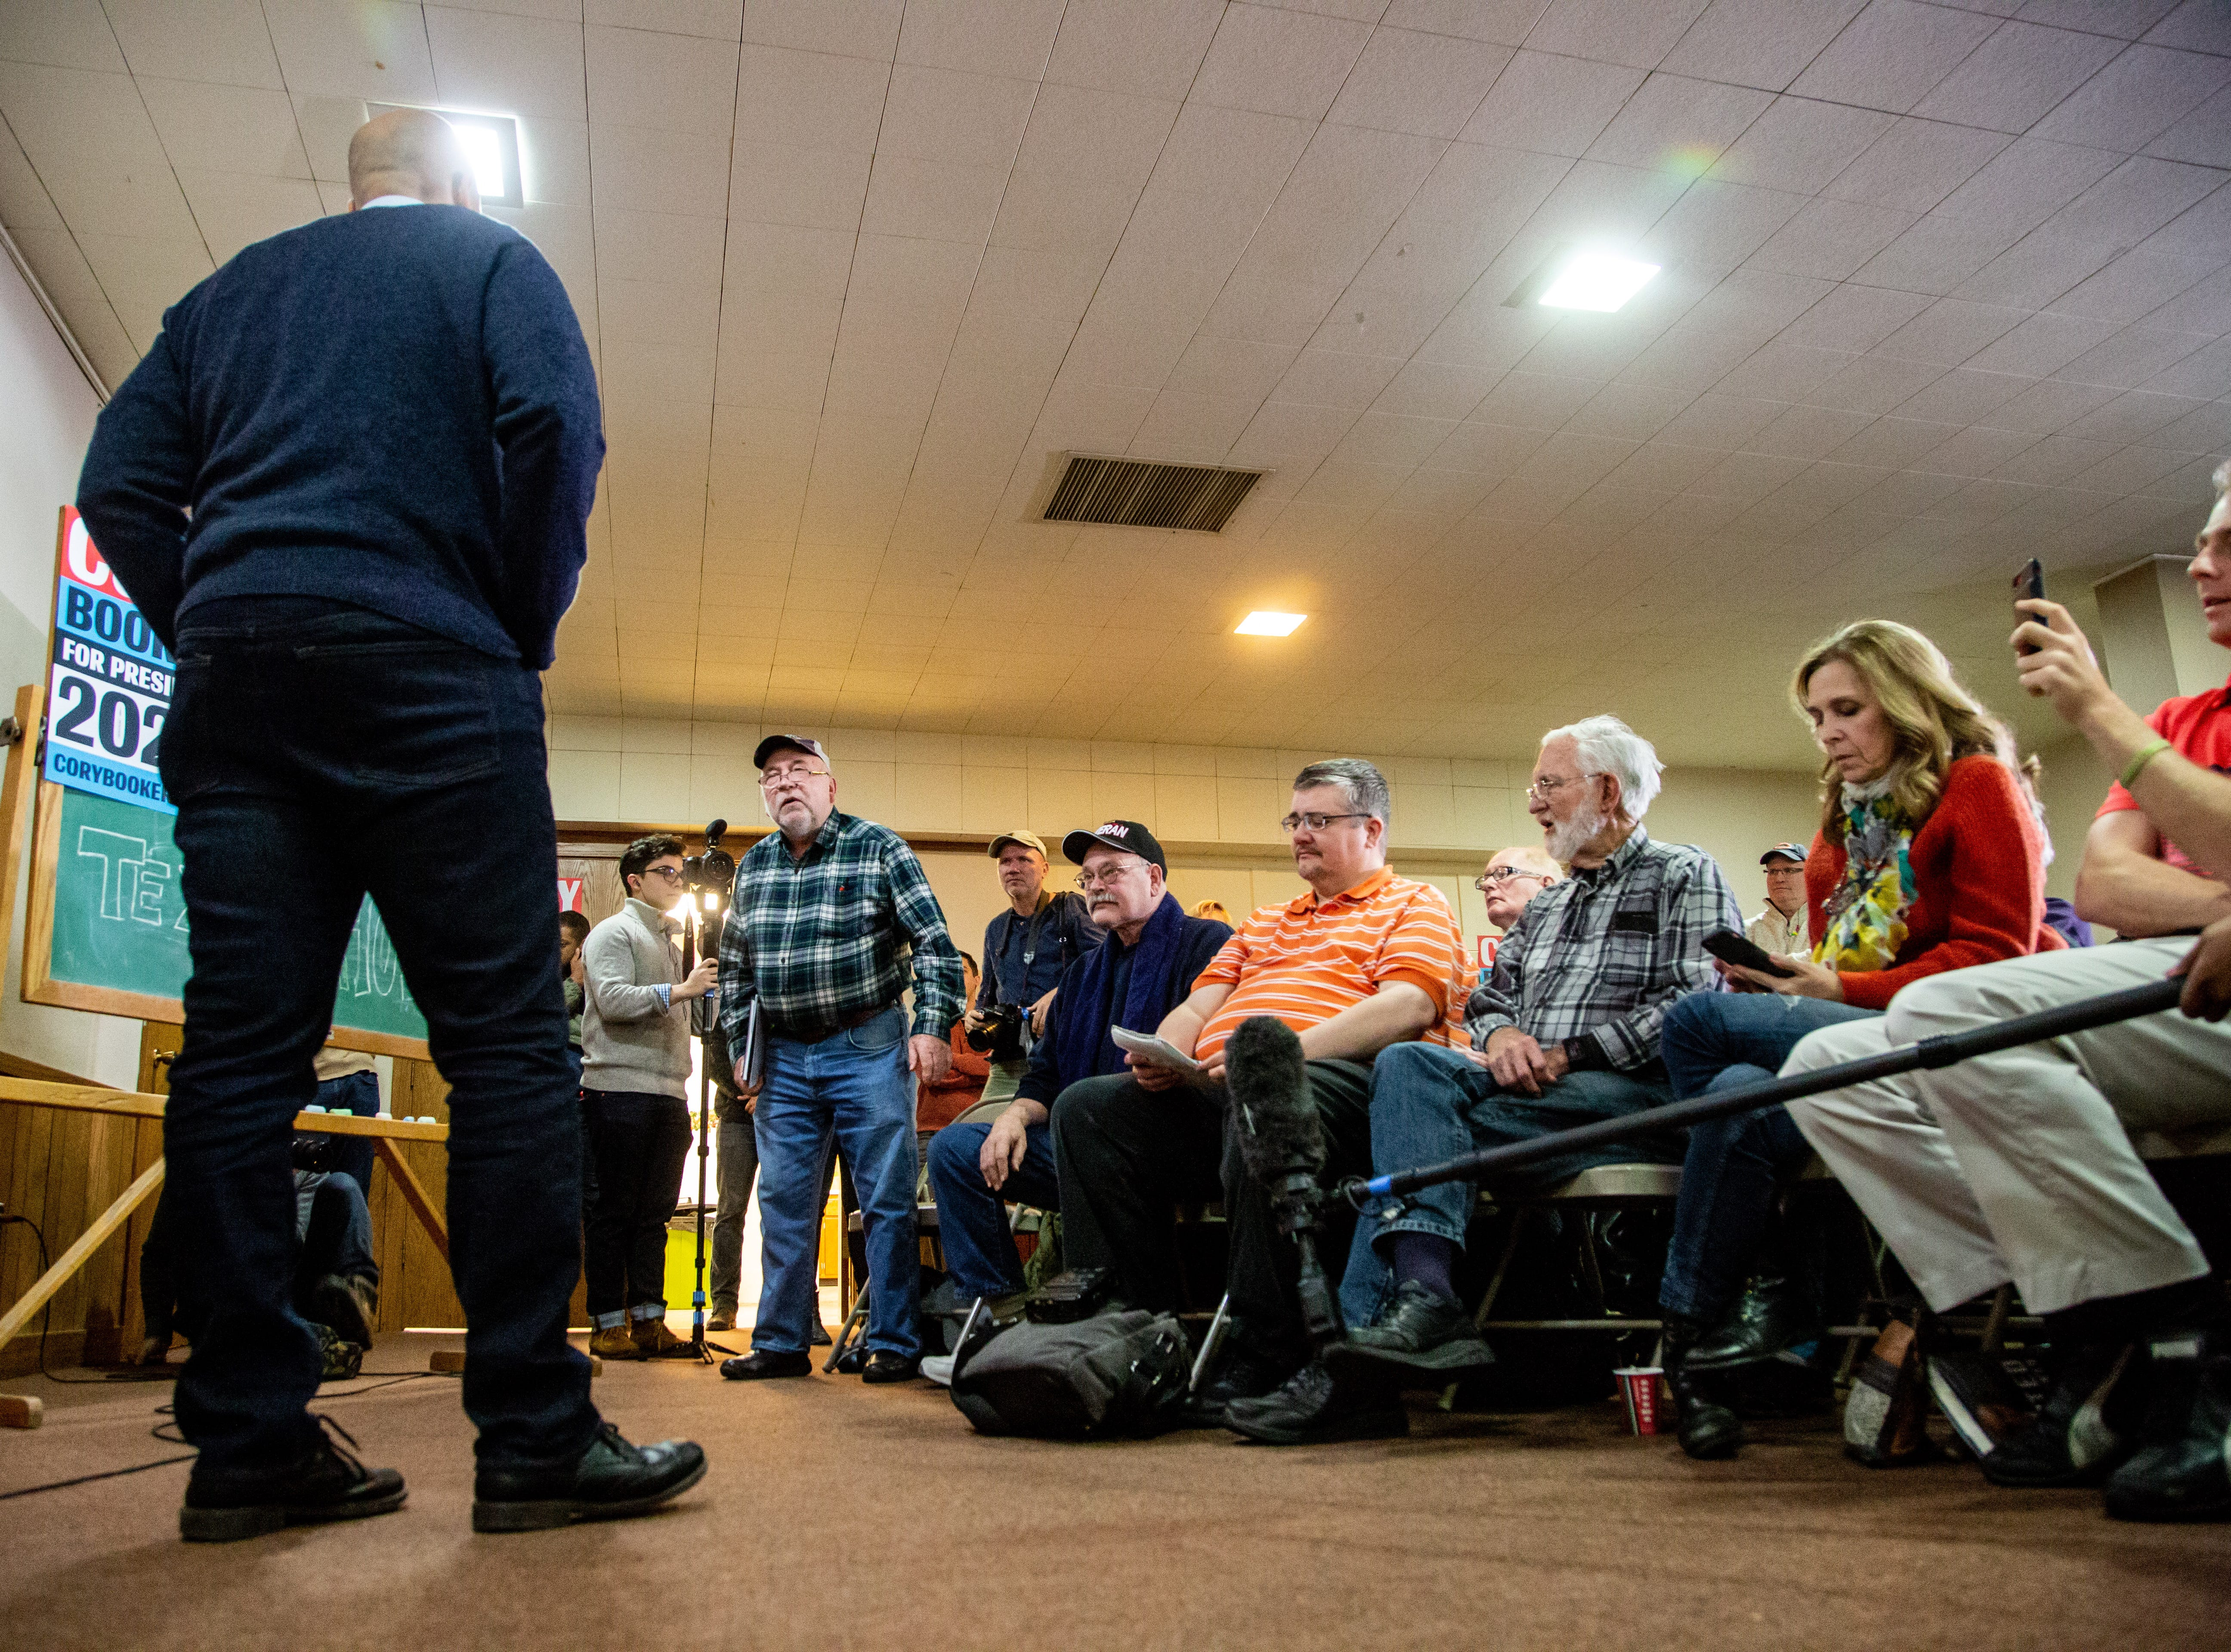 Sen. Cory Booker, D-N.J., takes a question from Chris Petersen of Clear Lake during a meet and greet at the First Congregational United Church of Christ in Mason City Friday, Feb. 8, 2019.